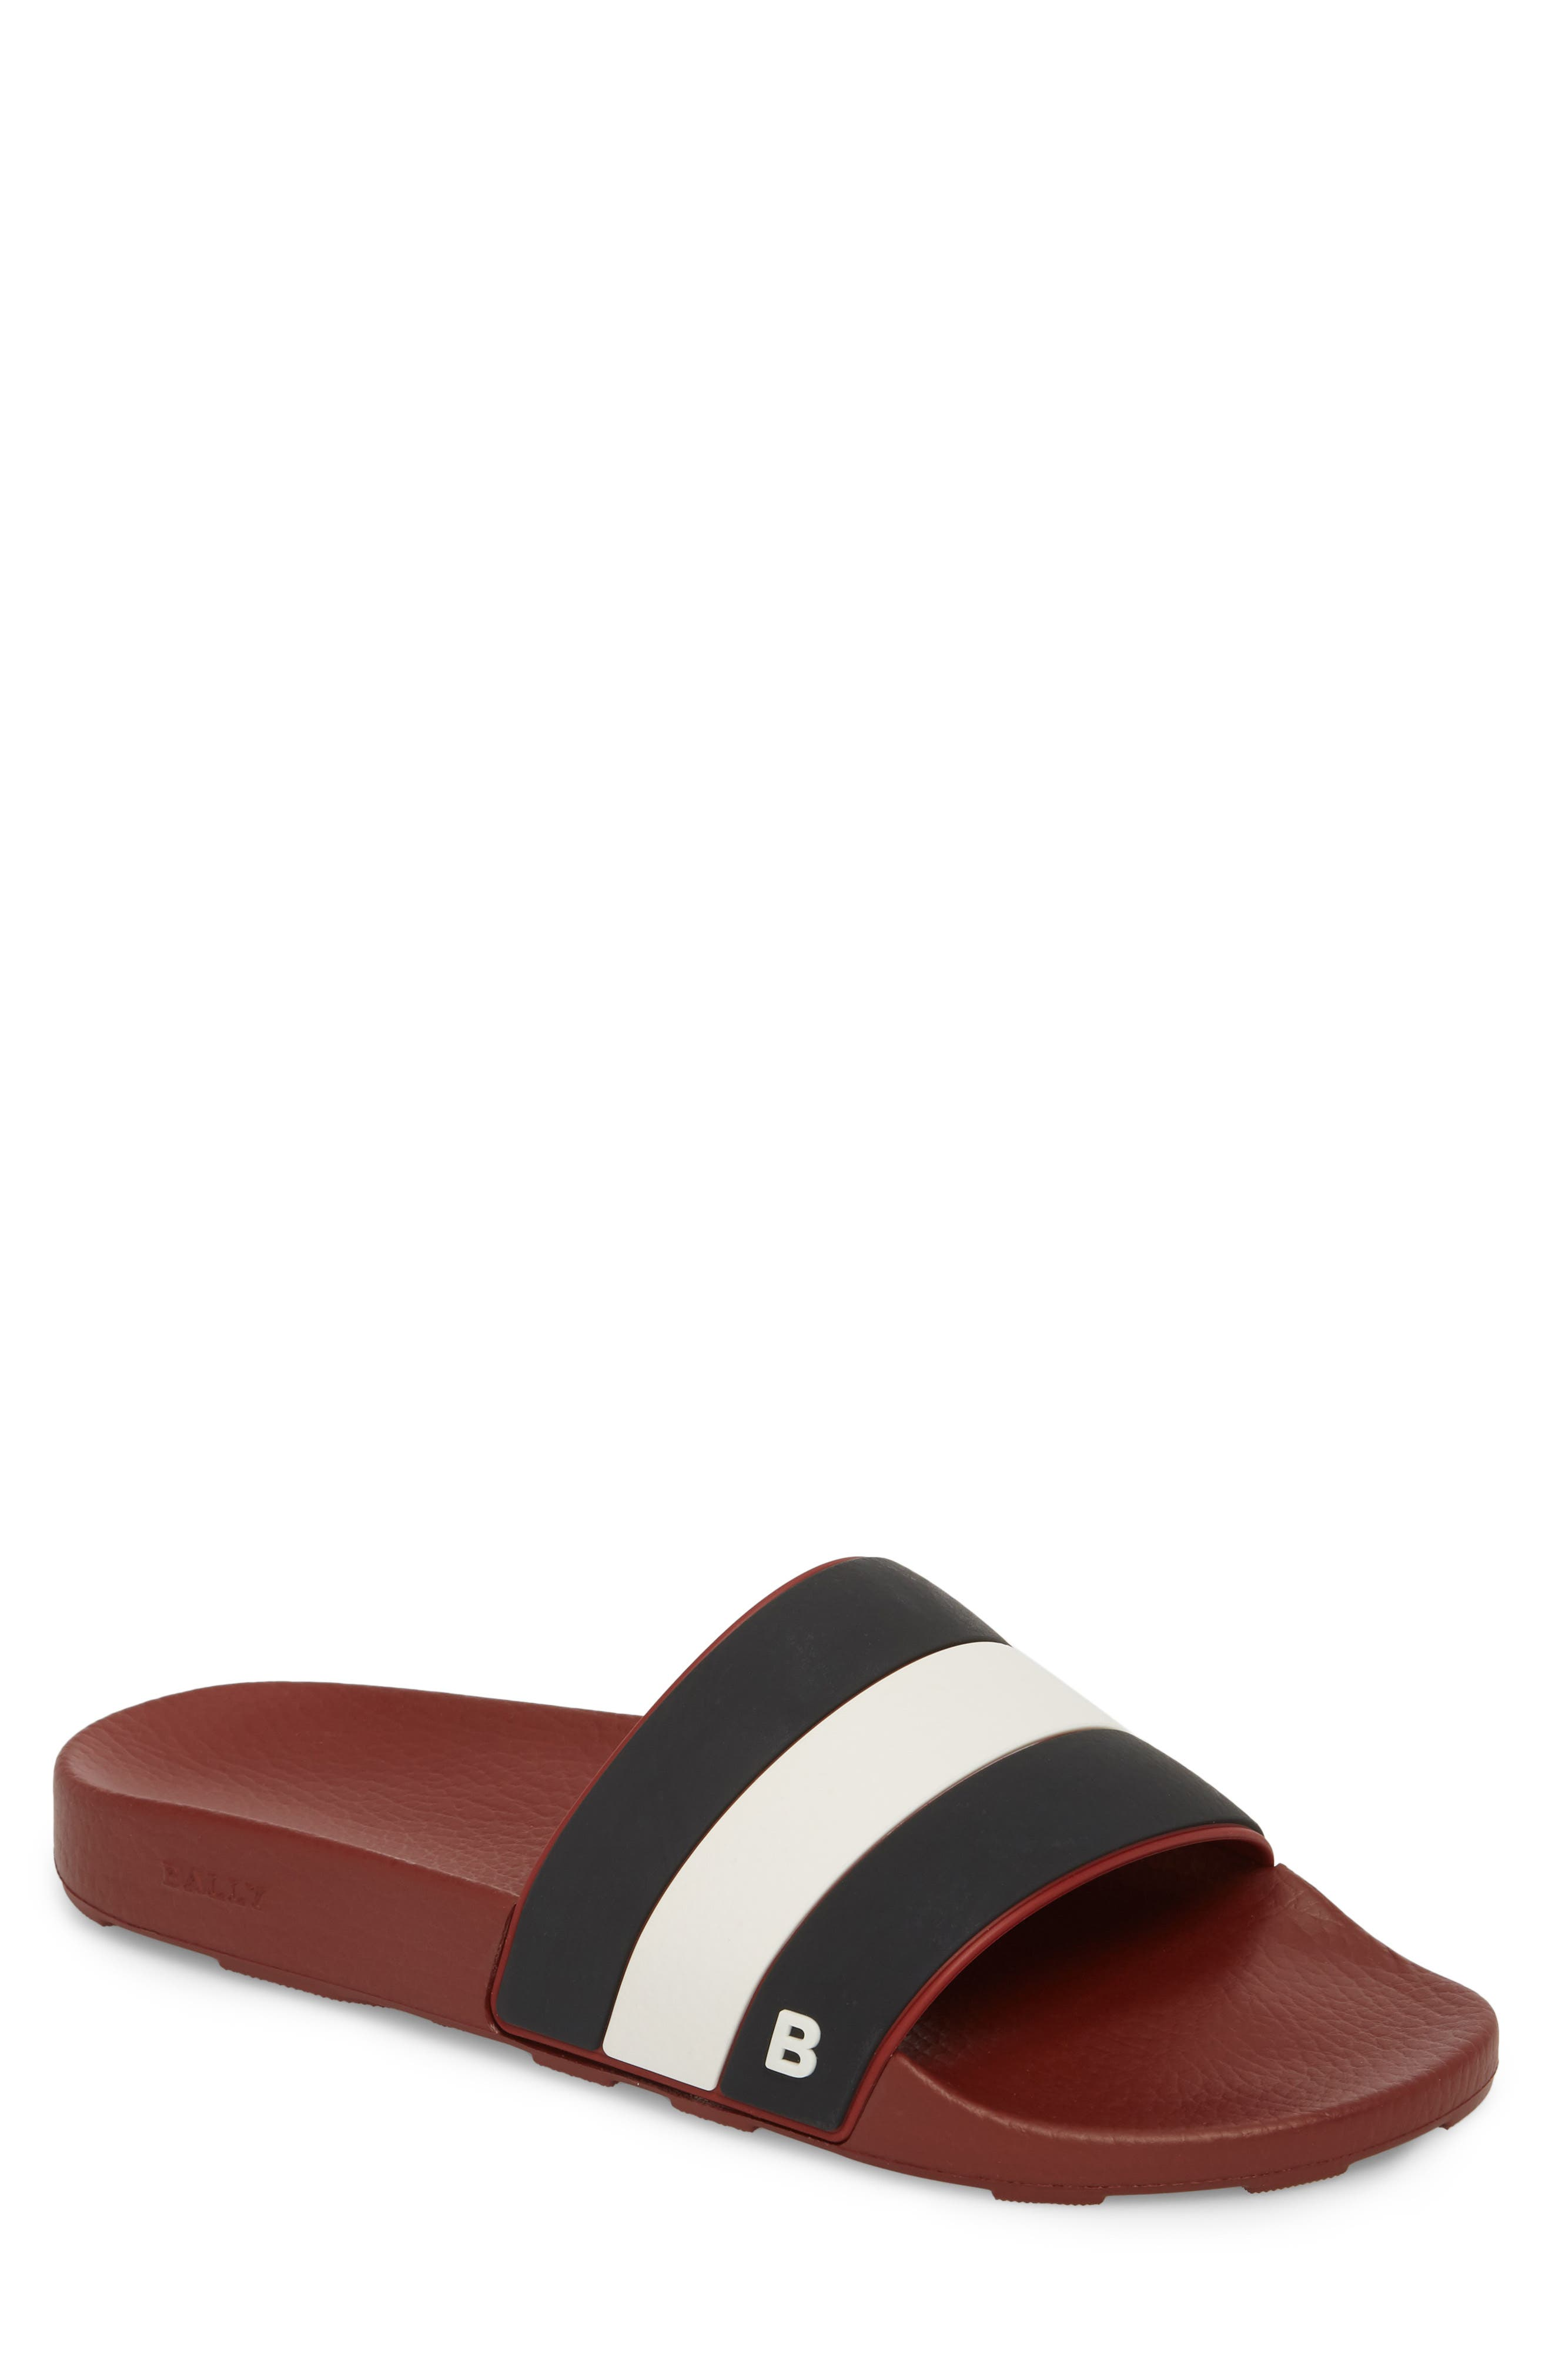 Sleter Sport Slide,                             Main thumbnail 1, color,                             Garnet